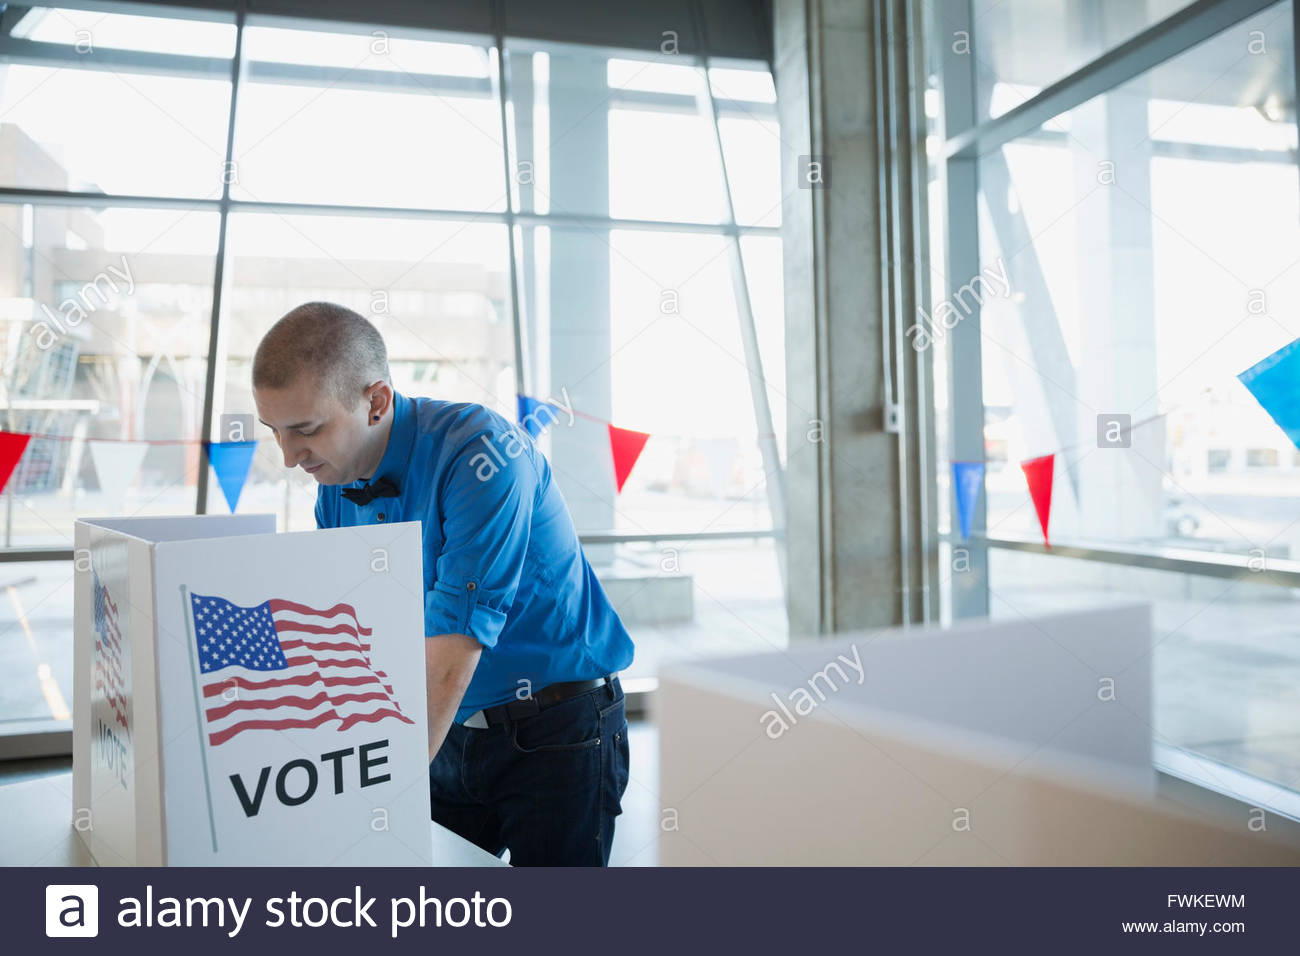 Man bow tie in voting booth polling place - Stock Image